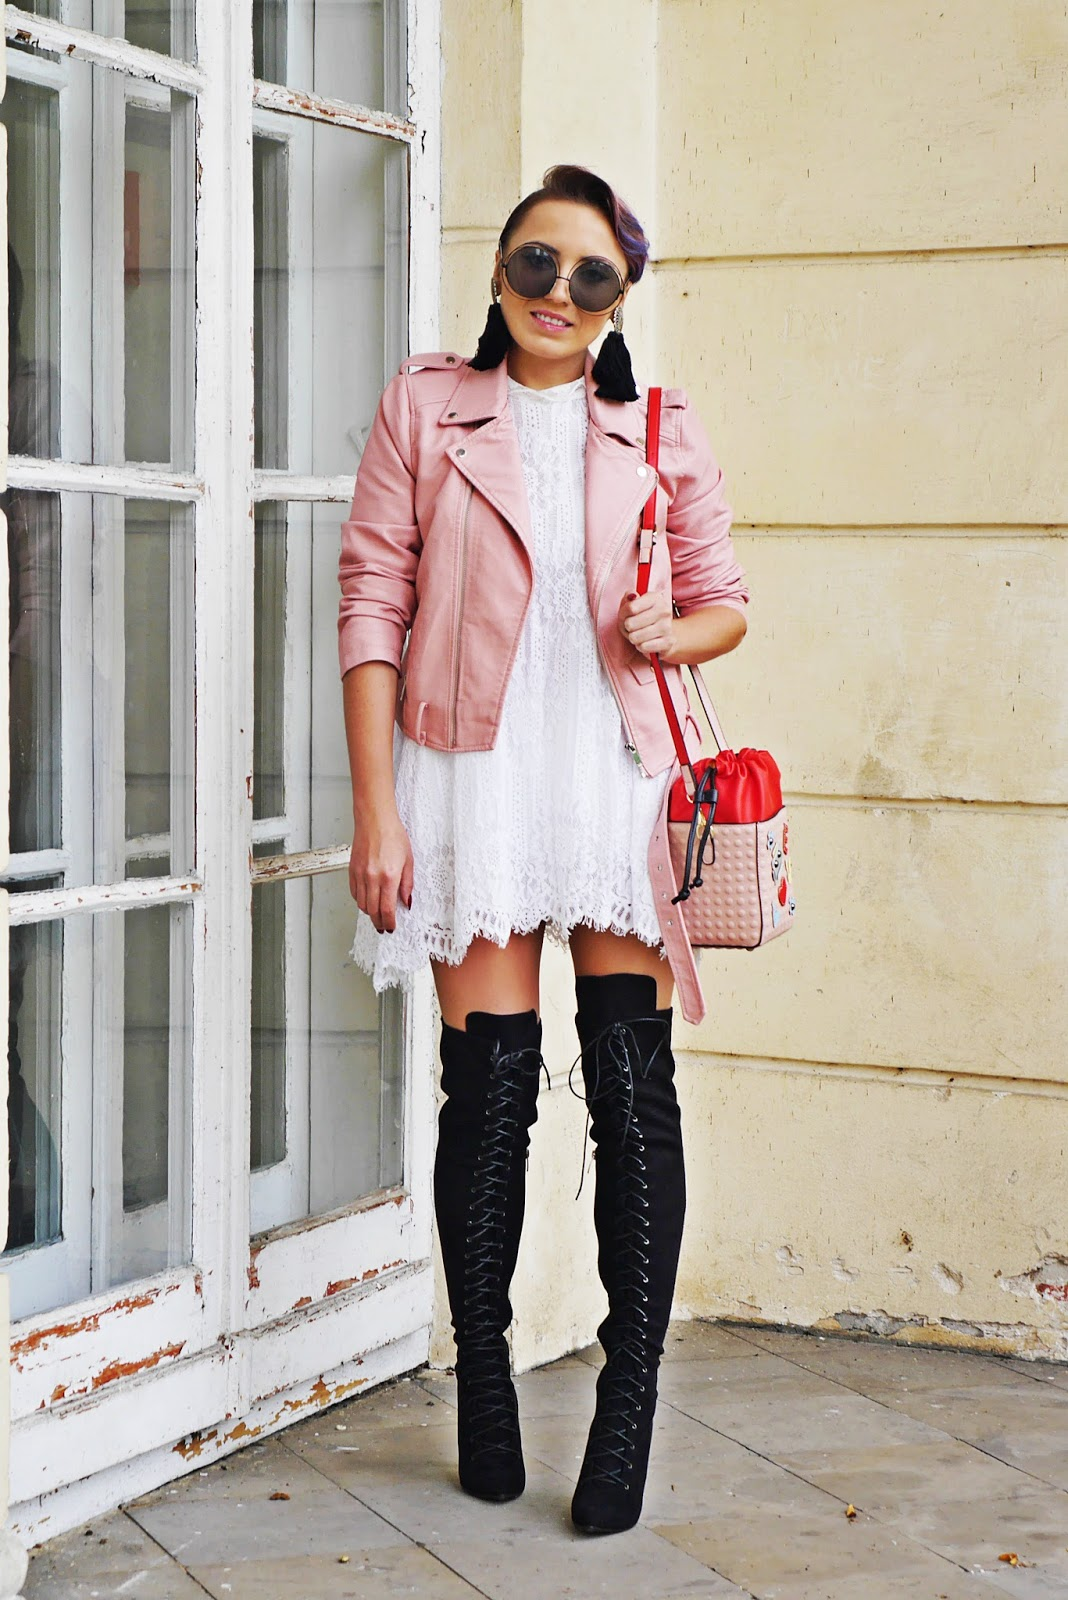 5_pink_biker_jacket_high_knee_shoes_renee_karyn_blog_modowy_lace_dress_180917df